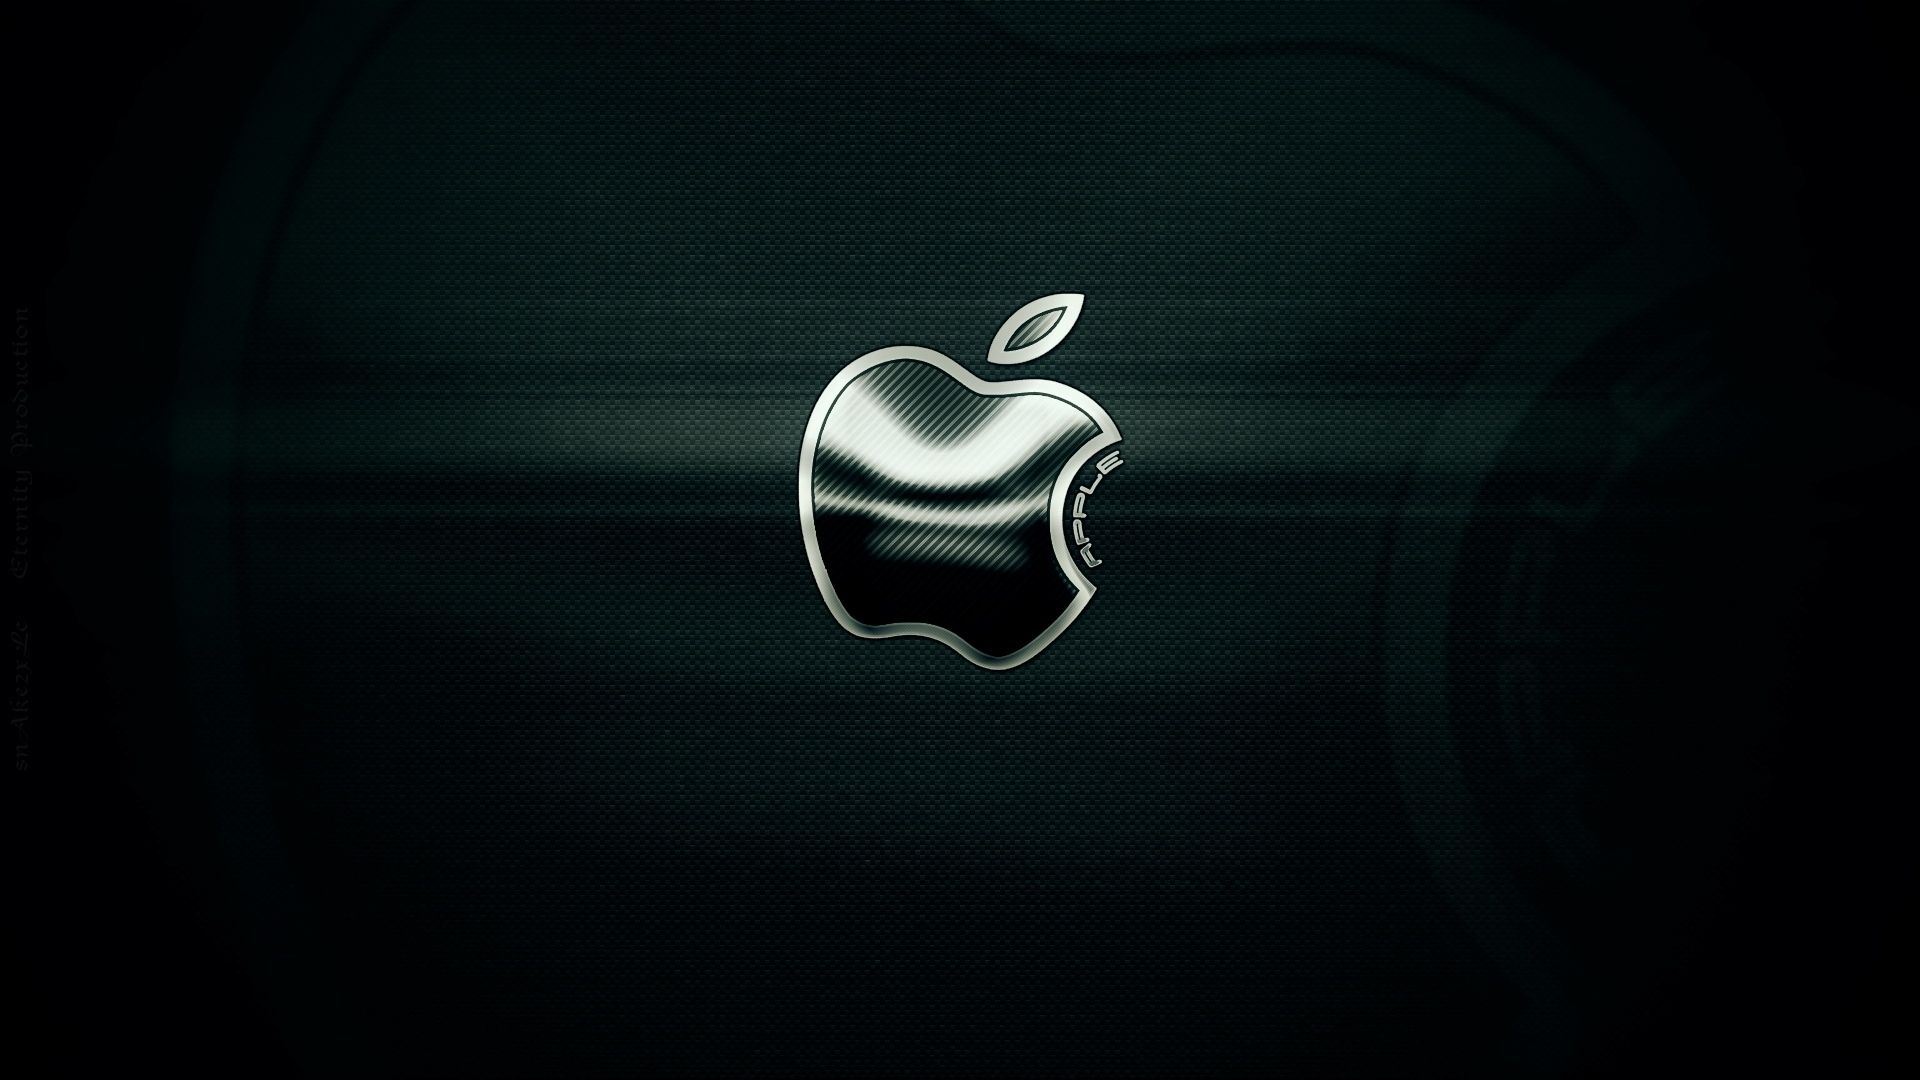 Download Apple HD wallpaper for download in laptop and desktop